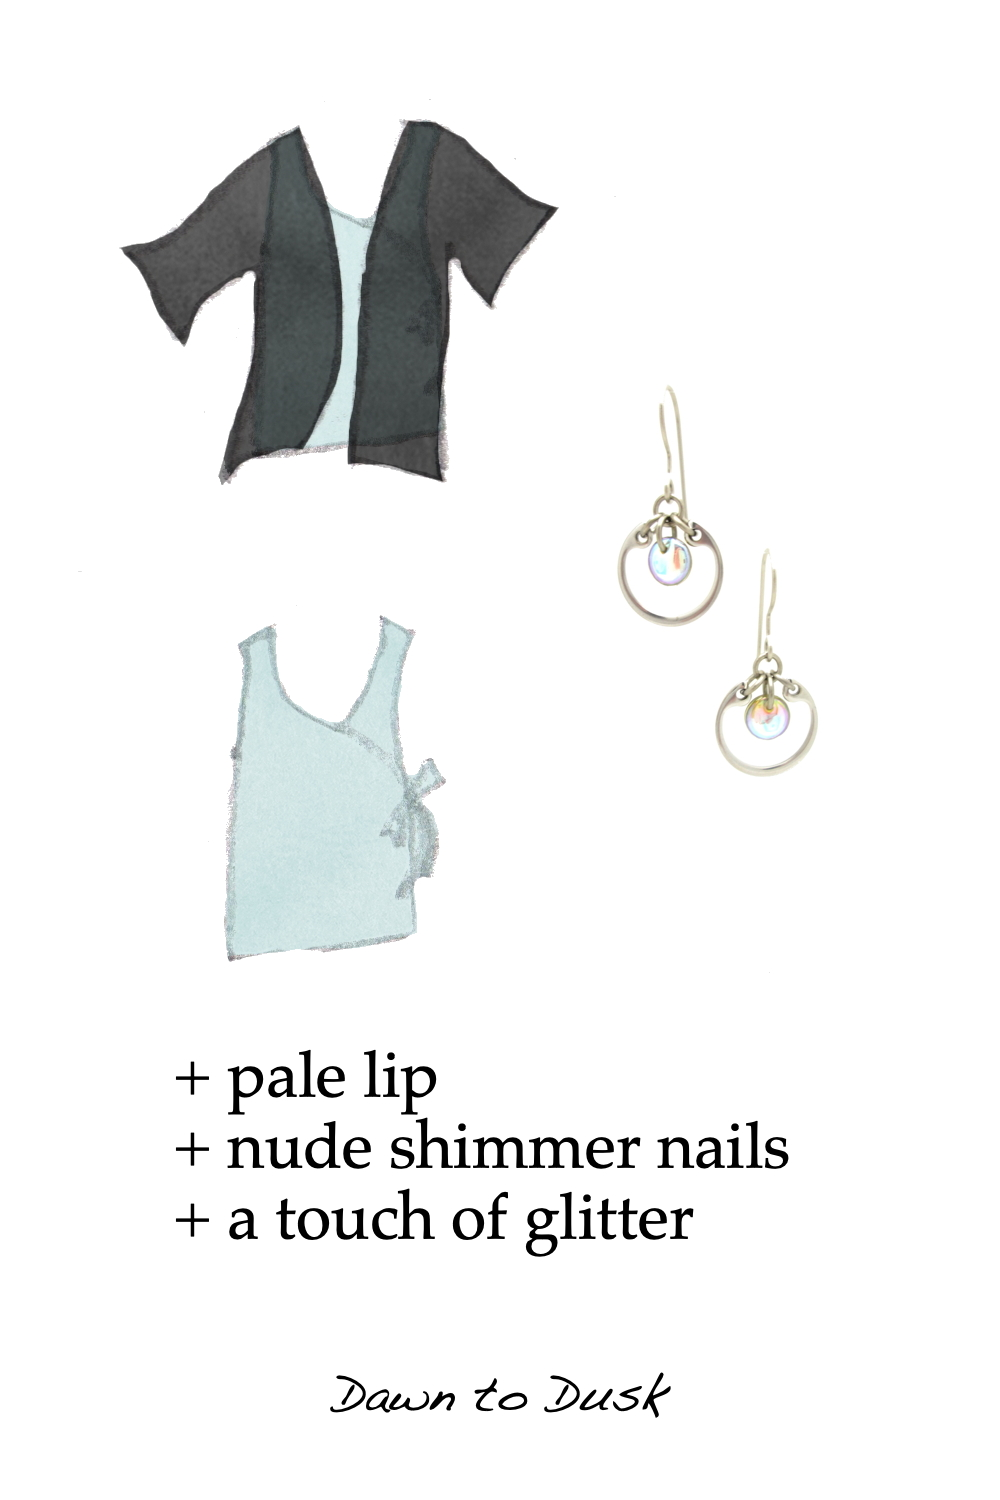 Style sketches of a light blue sleeveless wrap top, shown with and without a lightweight black cardigan, combined with a photo of Wraptillion's small modern circle earrings in pale rainbow. Text on image reads: + pale lip + nude shimmer nails + a touch of glitter; Dawn to Dusk.